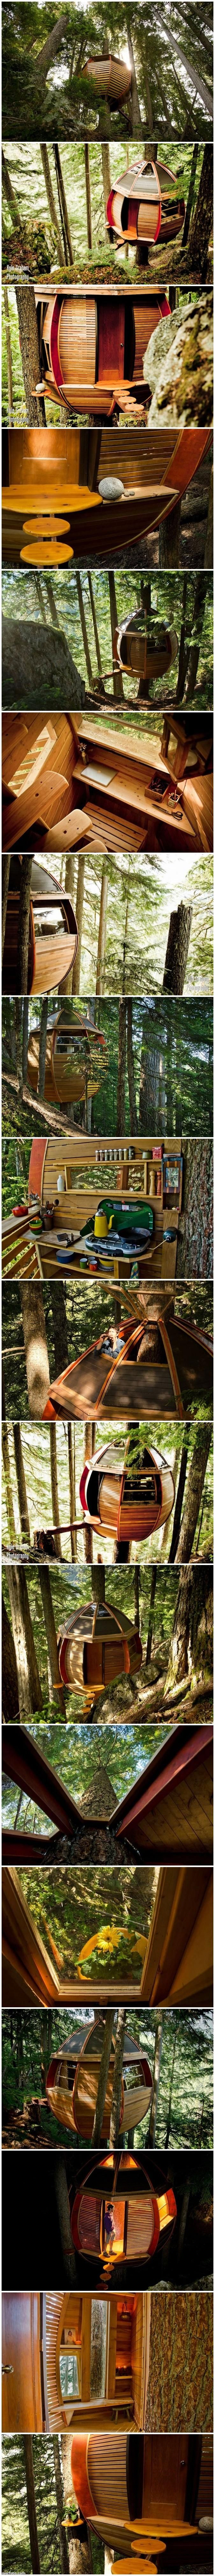 hidden egg treehouse this would be so cool things i love